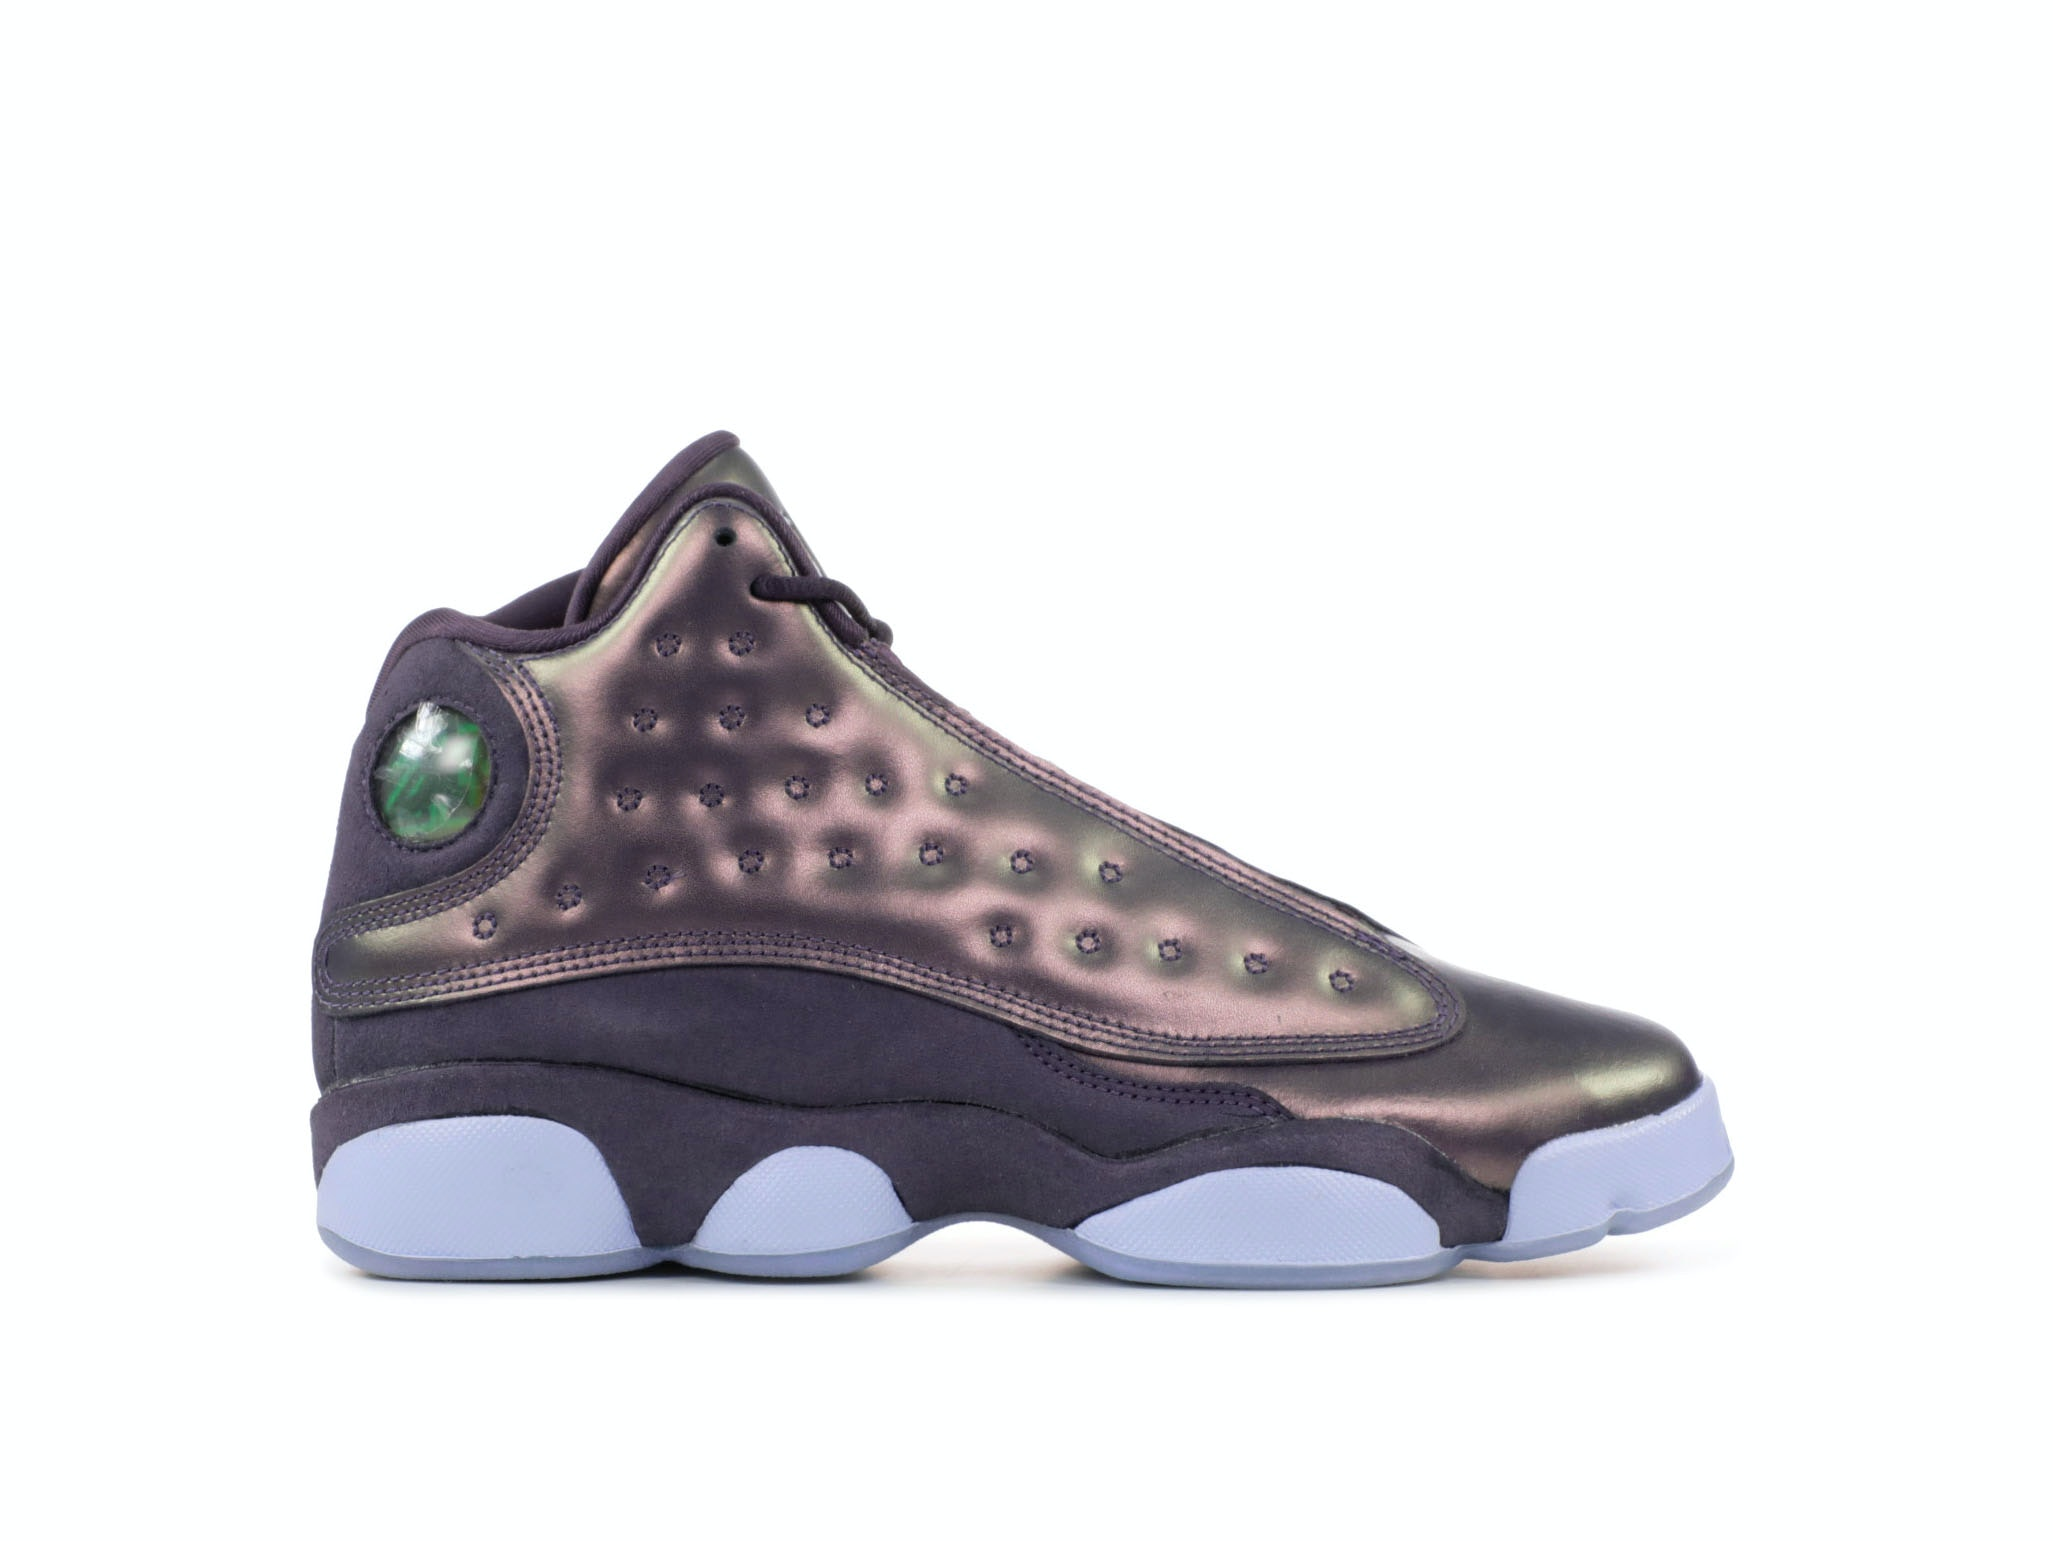 3554d36ea9eb Shop Air Jordan 13 Retro Premium HC GS Dark Raisin Online